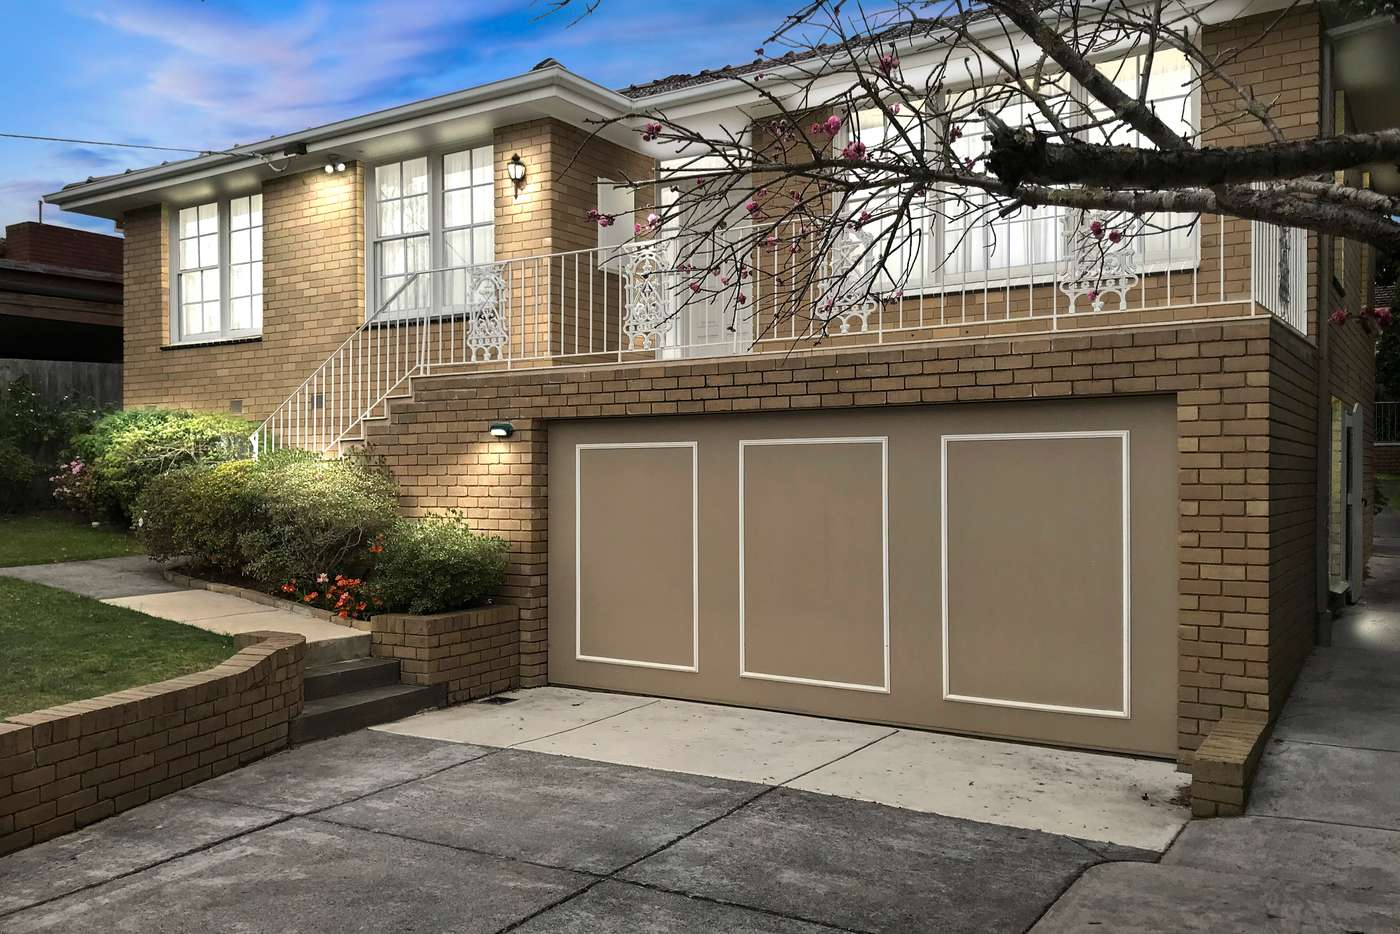 Main view of Homely house listing, 22 Central Avenue, Balwyn North VIC 3104